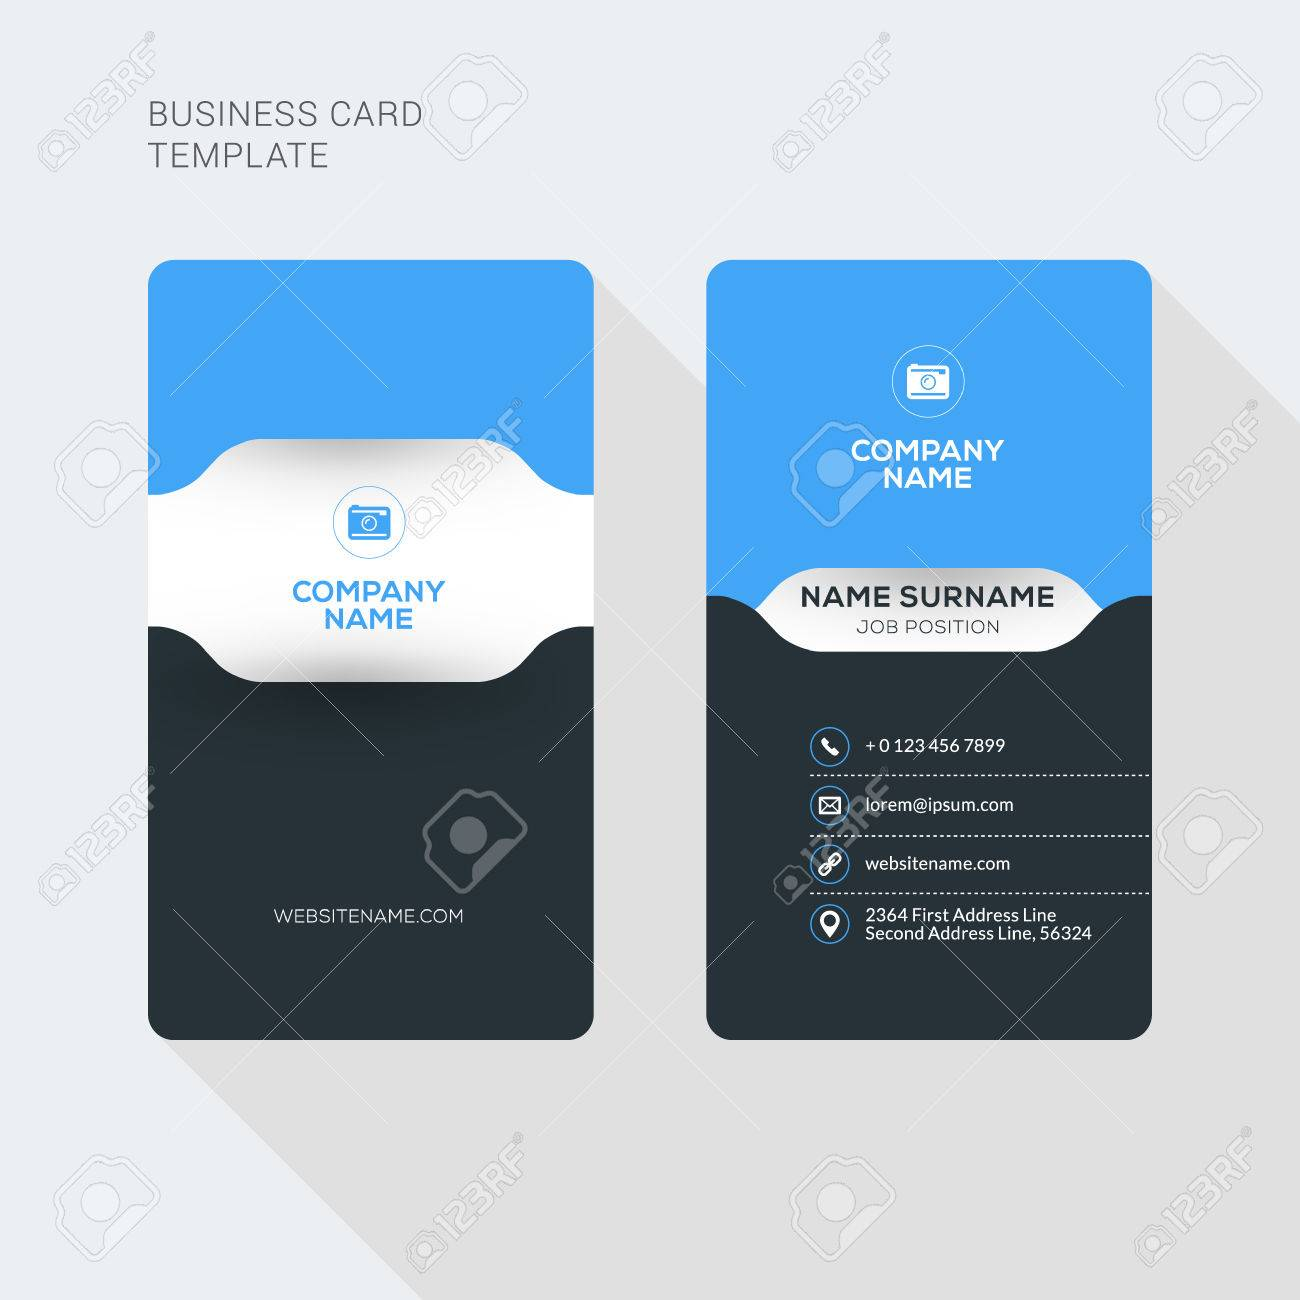 Creative and Clean Business Card Vector Print Template. Vertical Business Card Template. Flat Style Vector Illustration. Stationery Design - 52841531